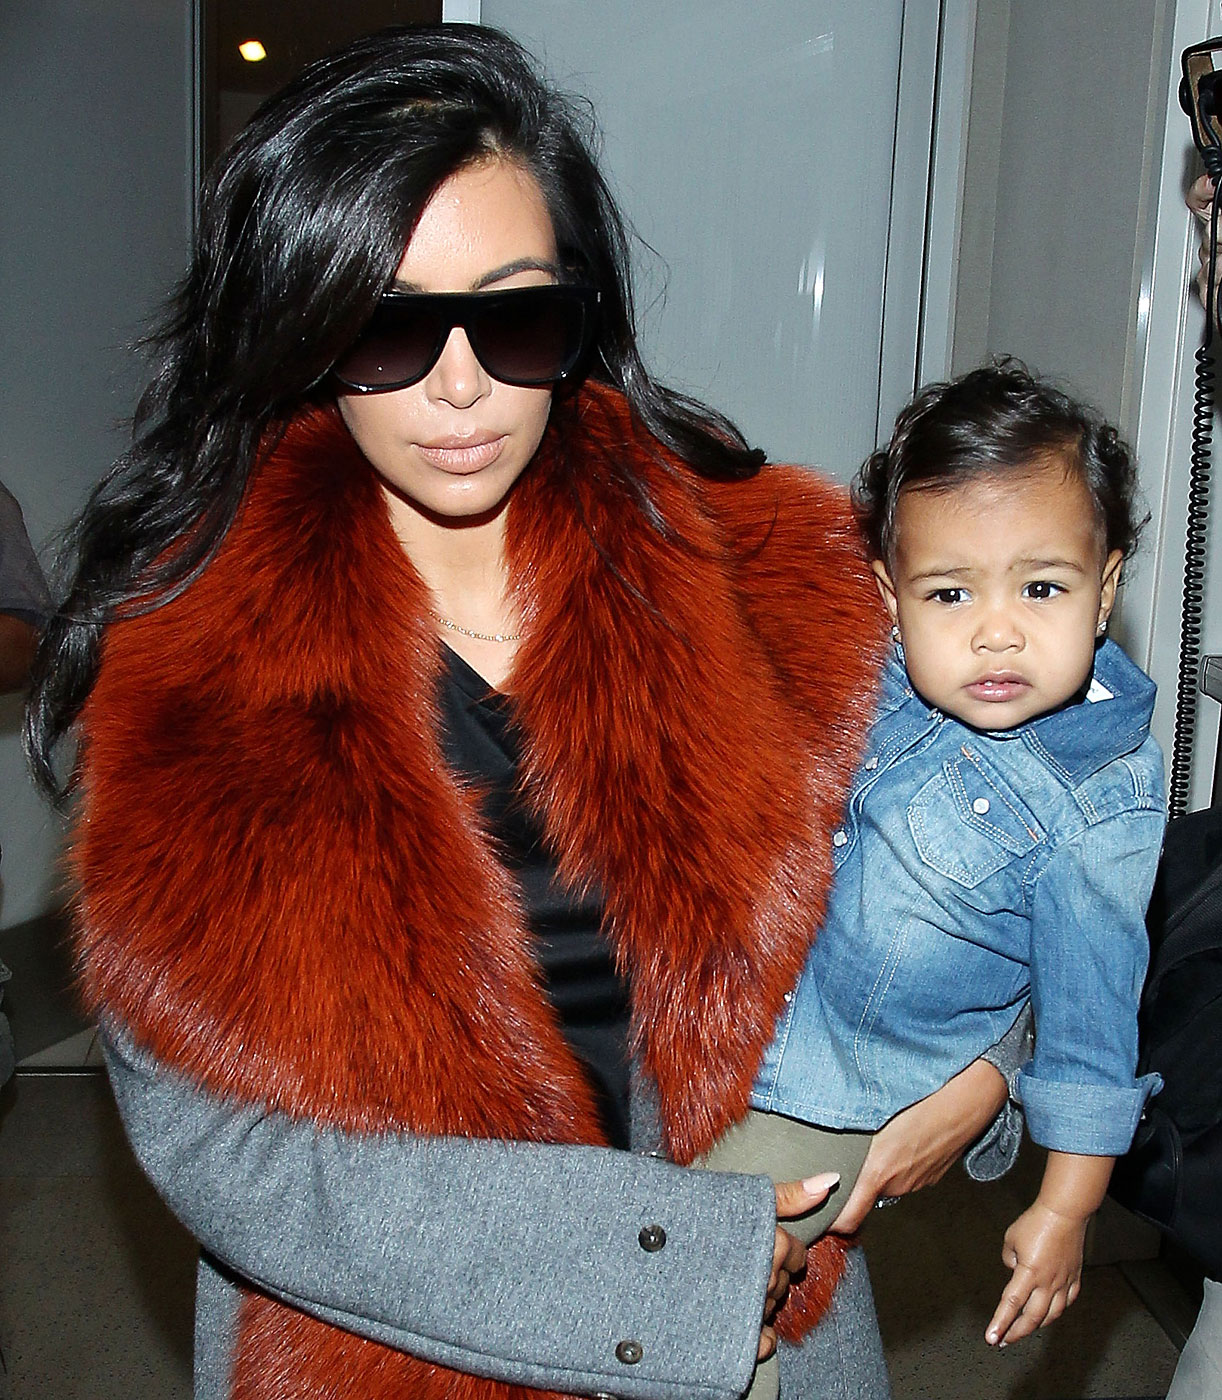 Kim Kardashian and baby North West at the Los Angeles International Airport on Sept. 22, 2014.